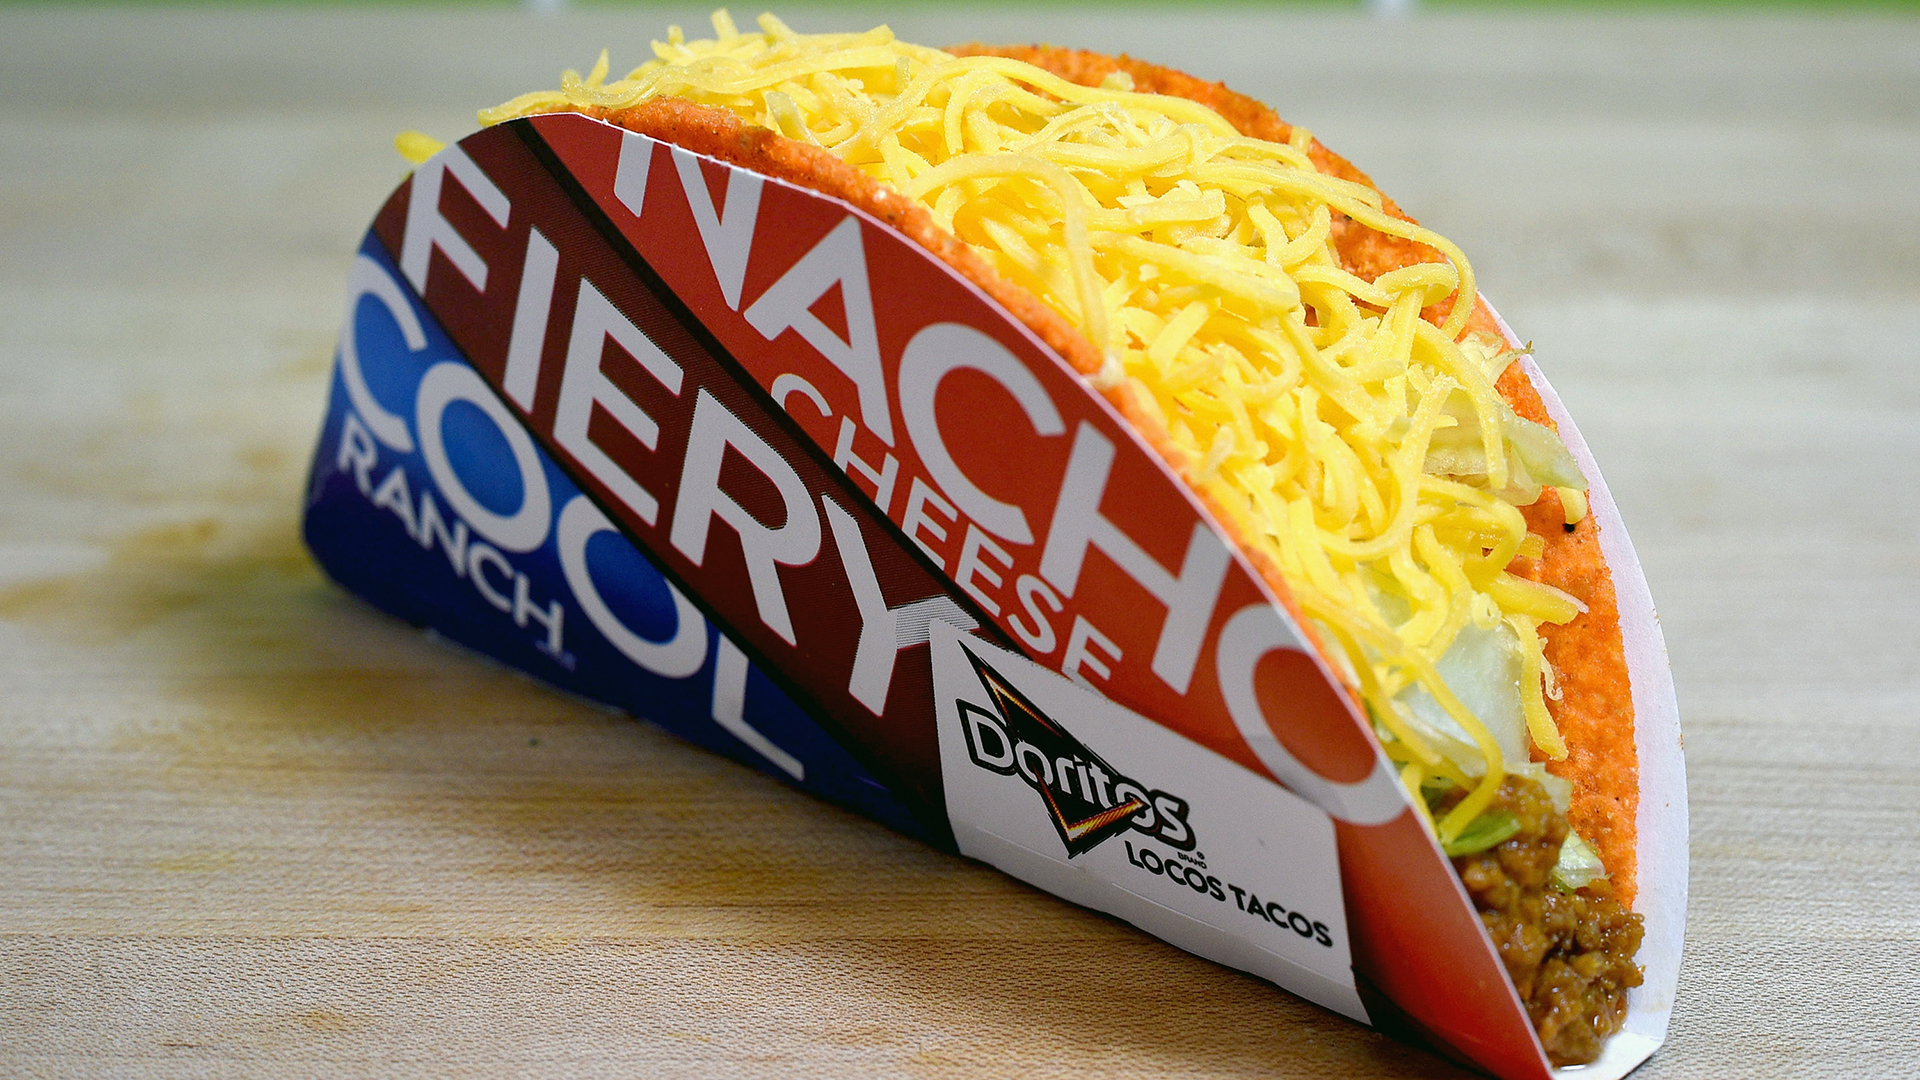 Doritos Locos Taco at Taco Bell-159532.jpg07894851